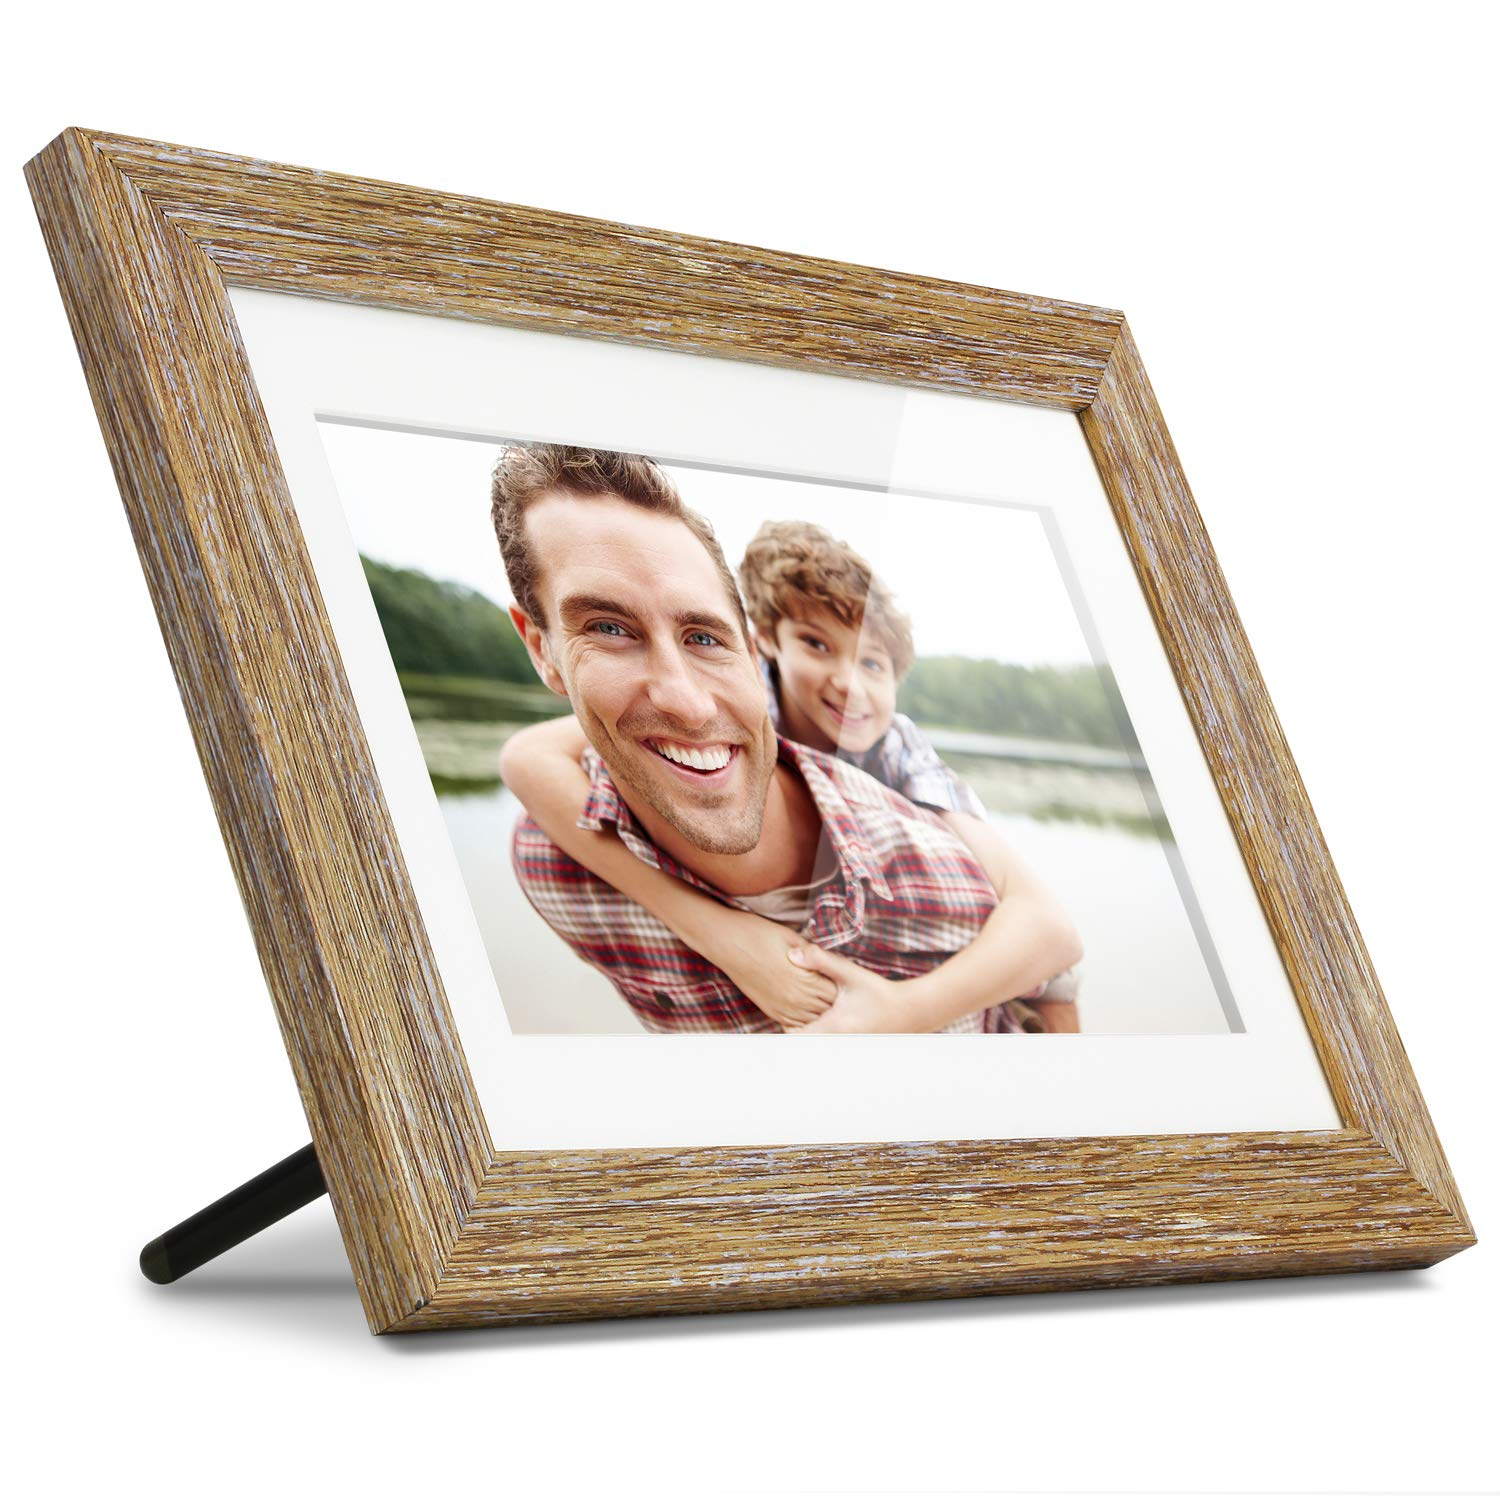 Aluratek (ADPFD10F) 10 Inch Digital Photo Frame with Auto Slideshow, Distressed Wood Border, 1024 x 600, 16: 9 Aspect Ratio, Wall Mountable by Aluratek